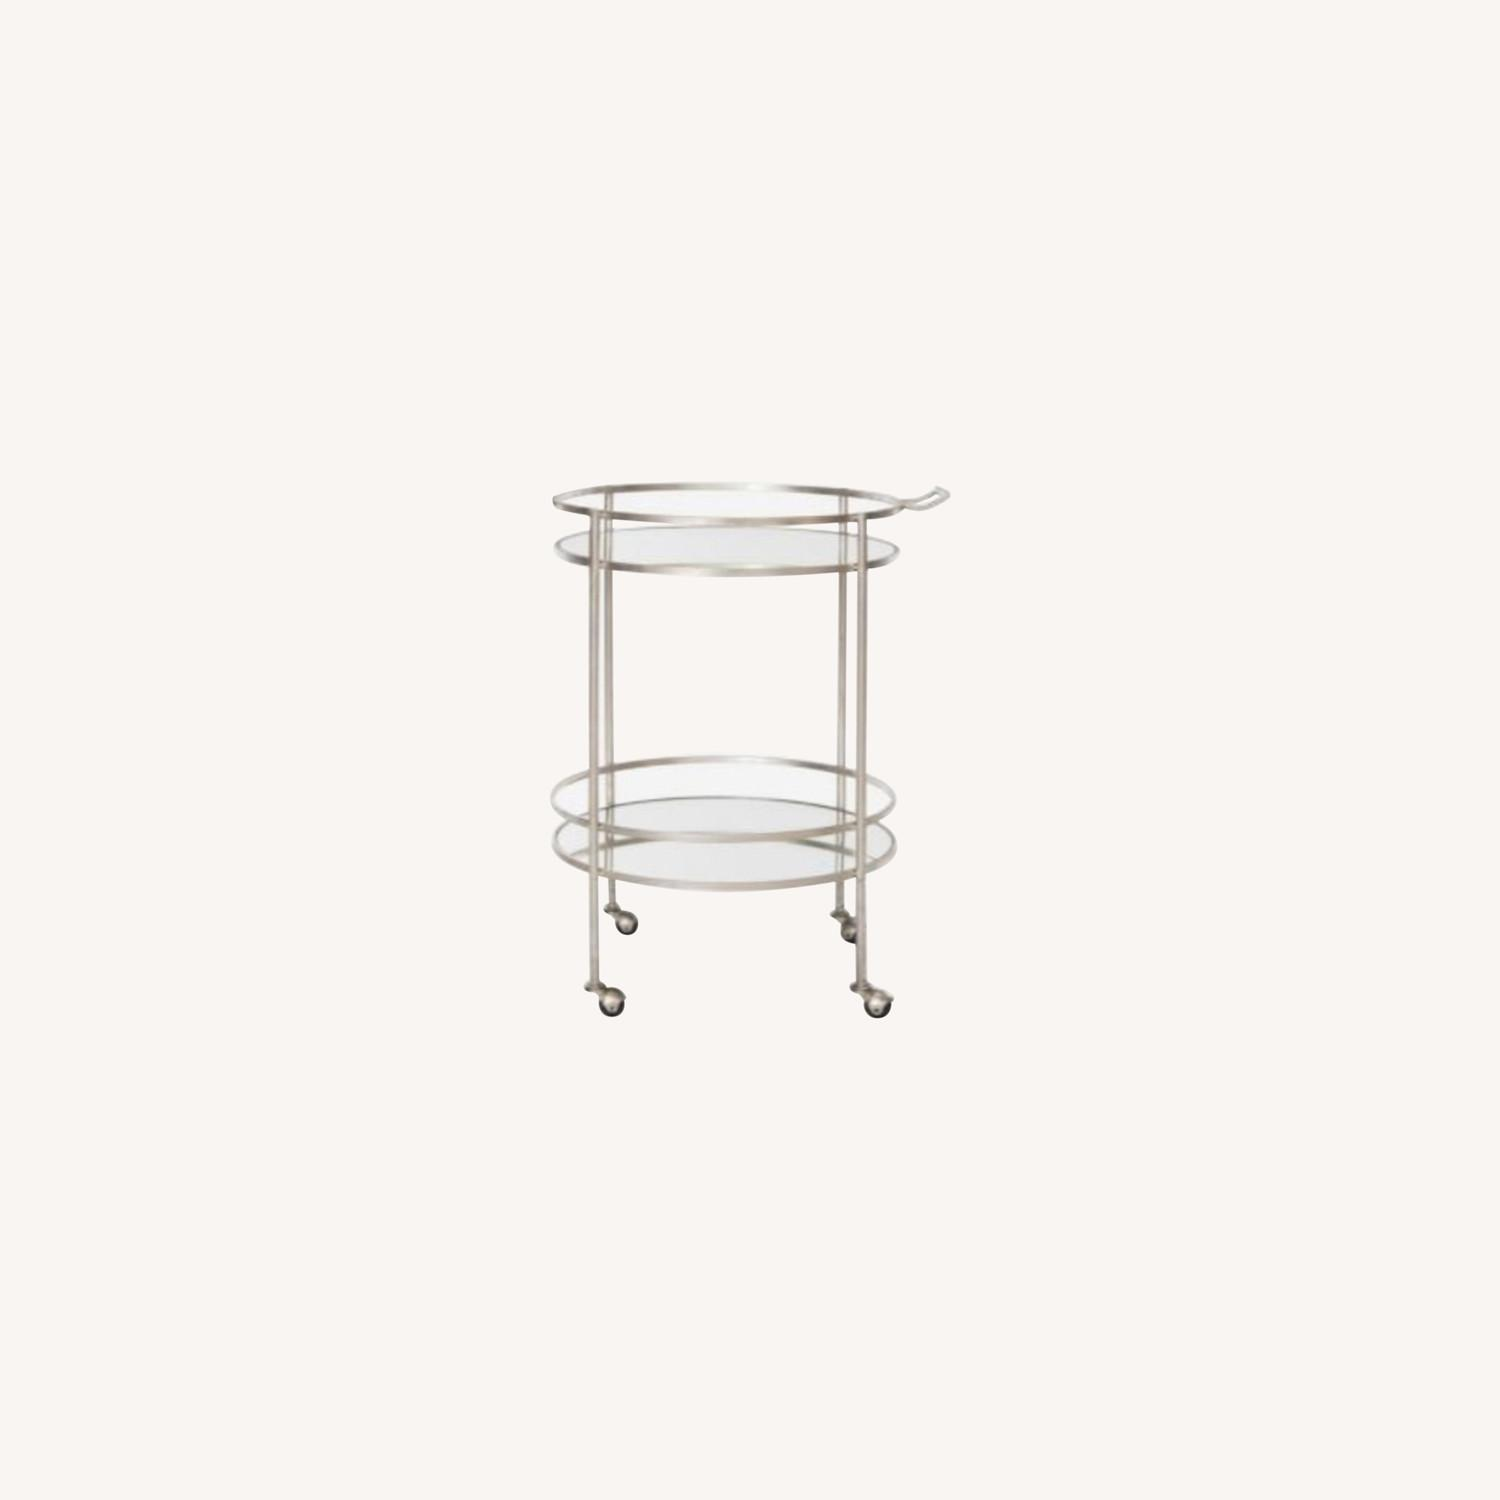 Safavieh Two Tier Bar Cart Gold and Mirror - image-0